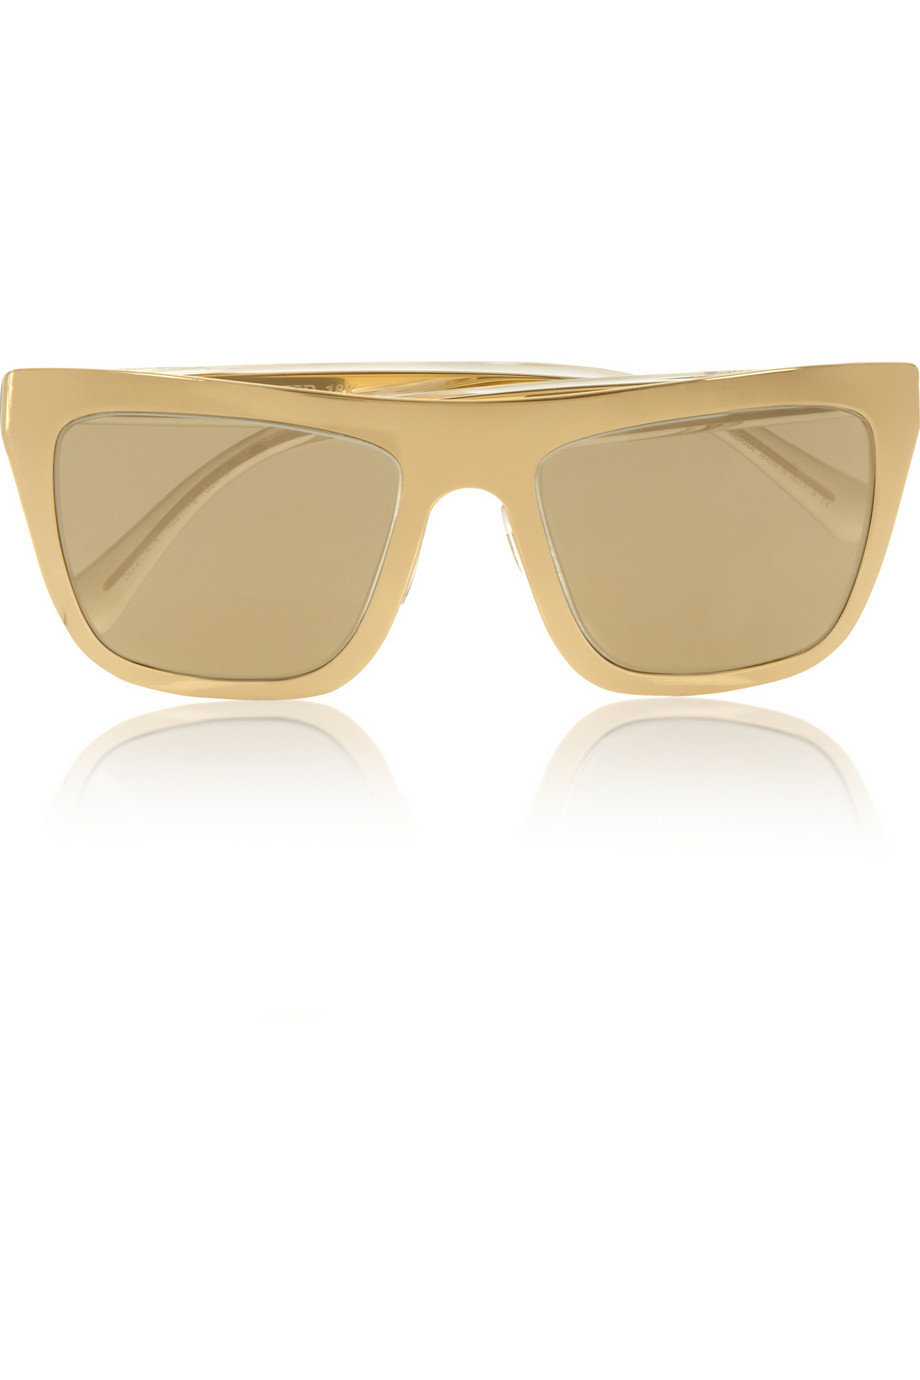 Dolce And Gabbana Gold Sunglasses  dolce gabbana gold plated d frame mirrored sunglasses in